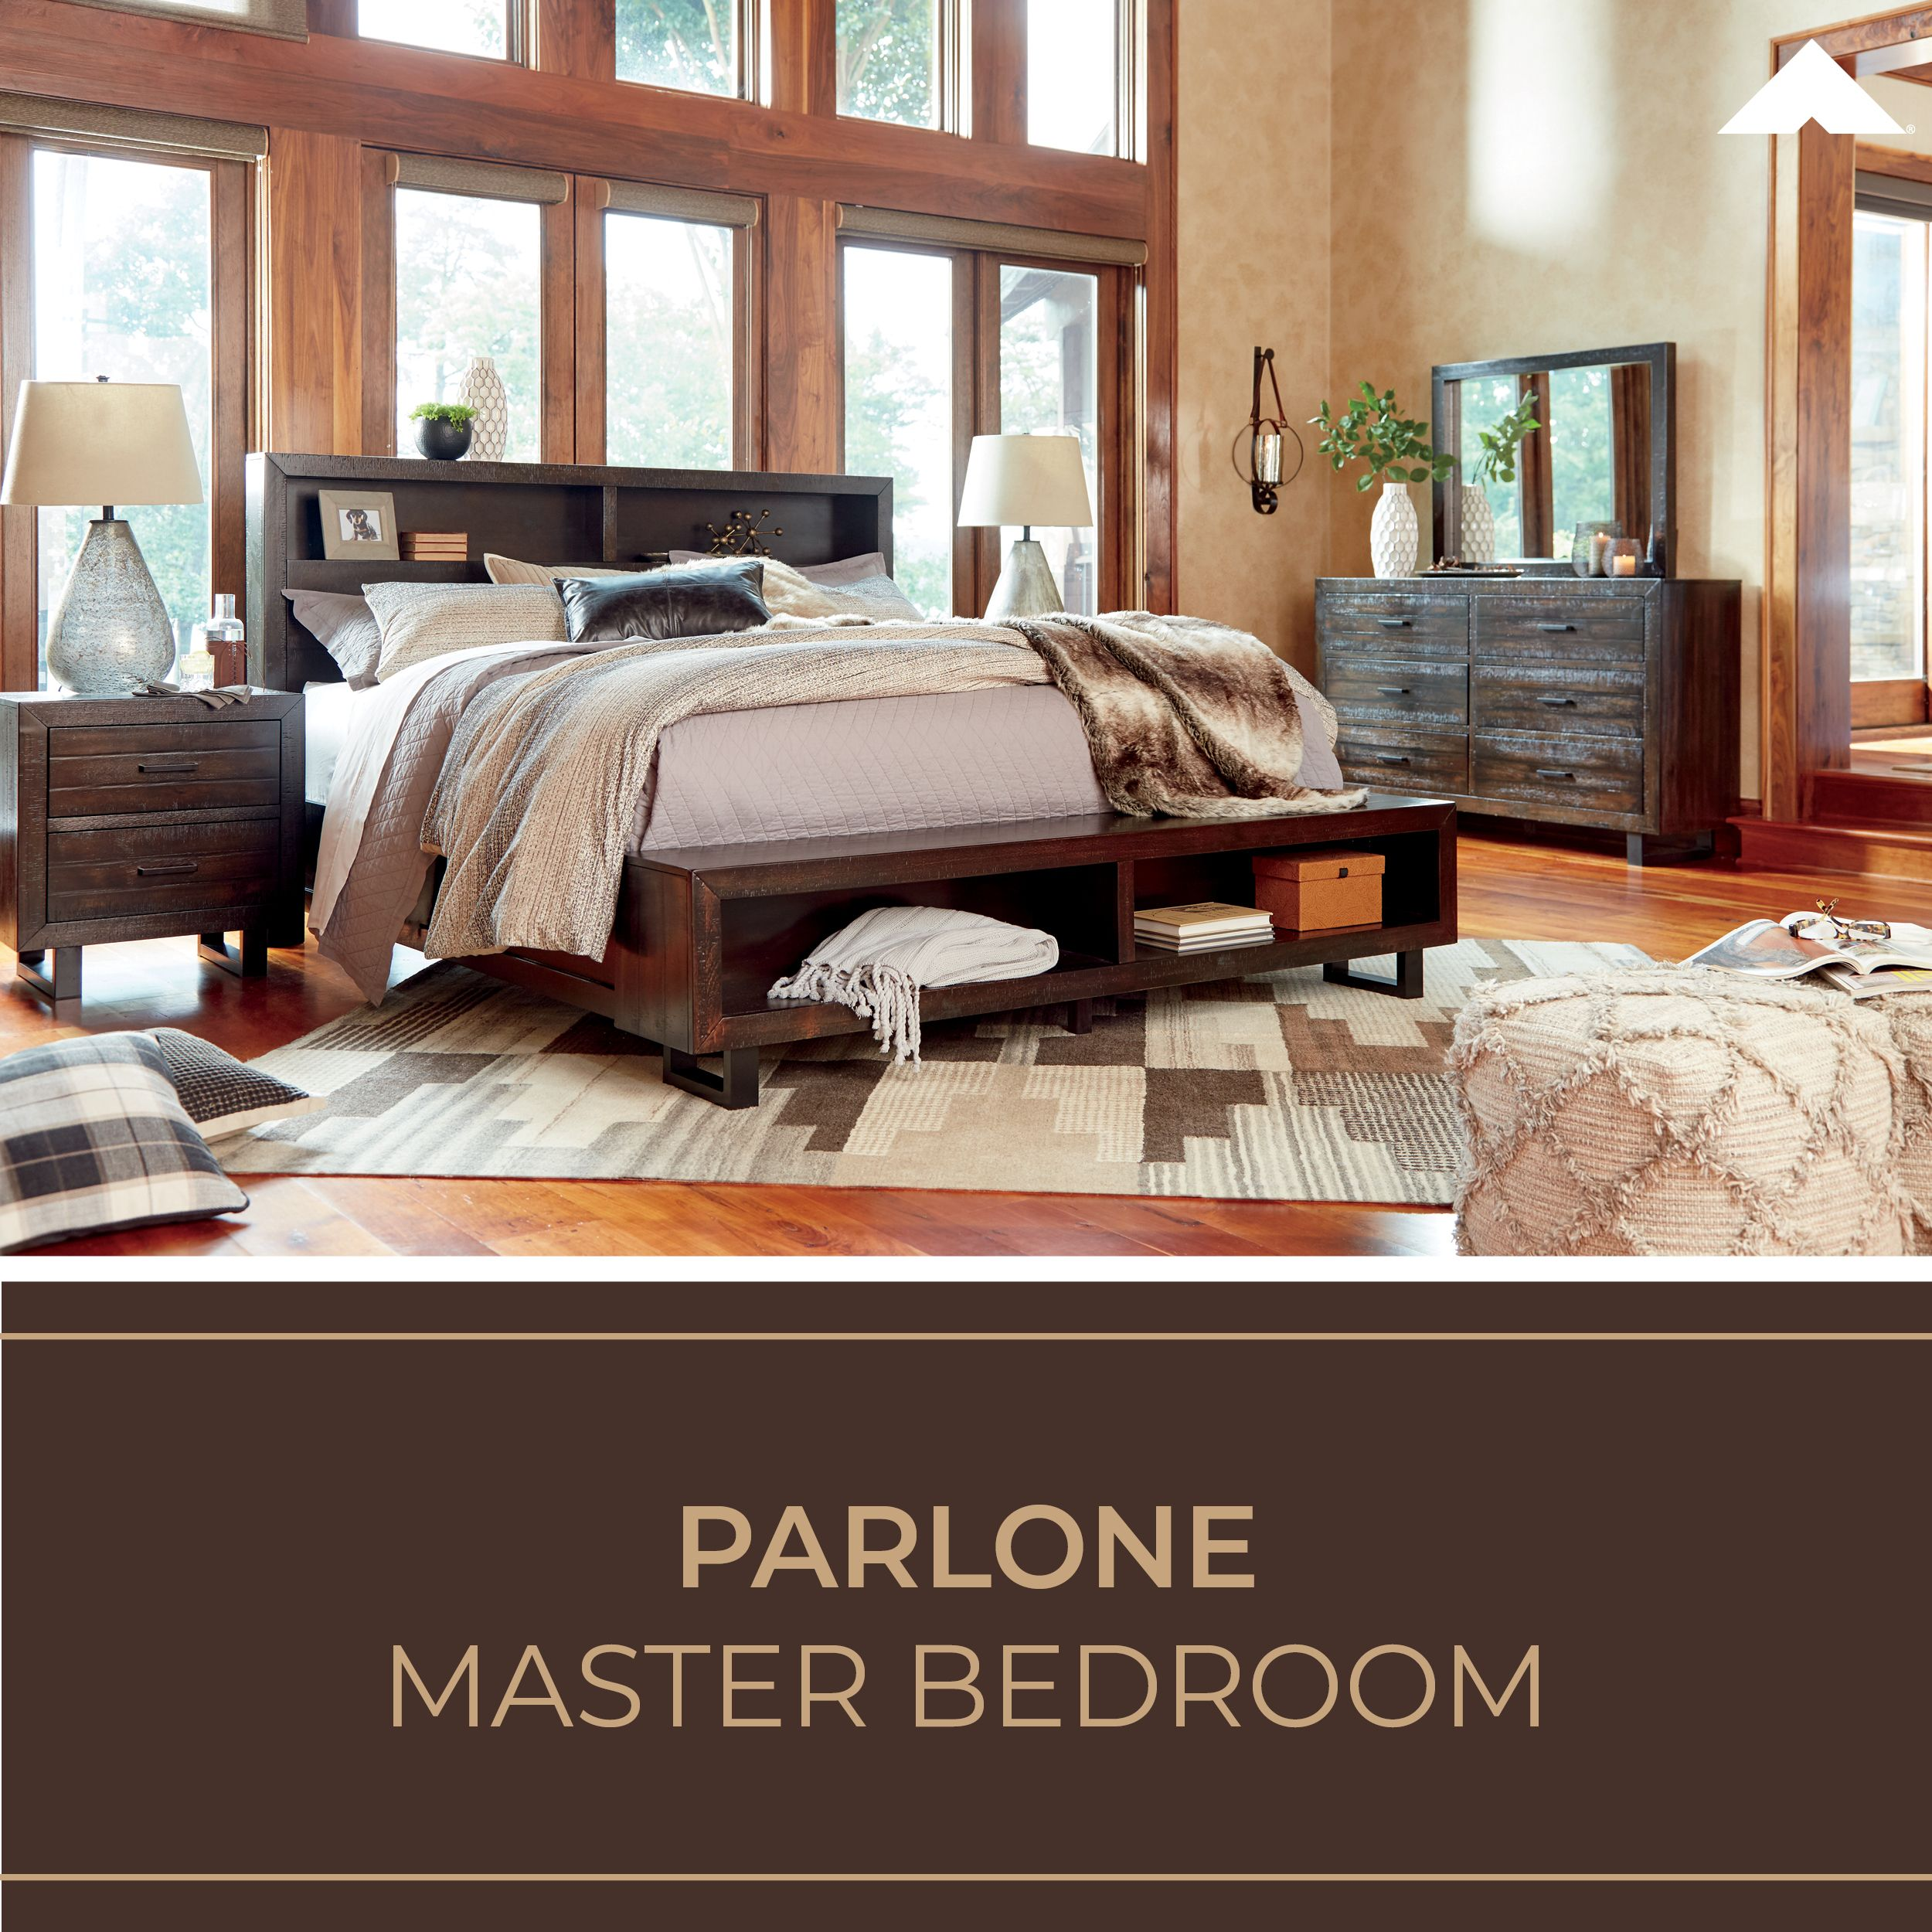 Master bedroom goals  Parlone Casual Master Bedroom Furniture by Ashley Furniture